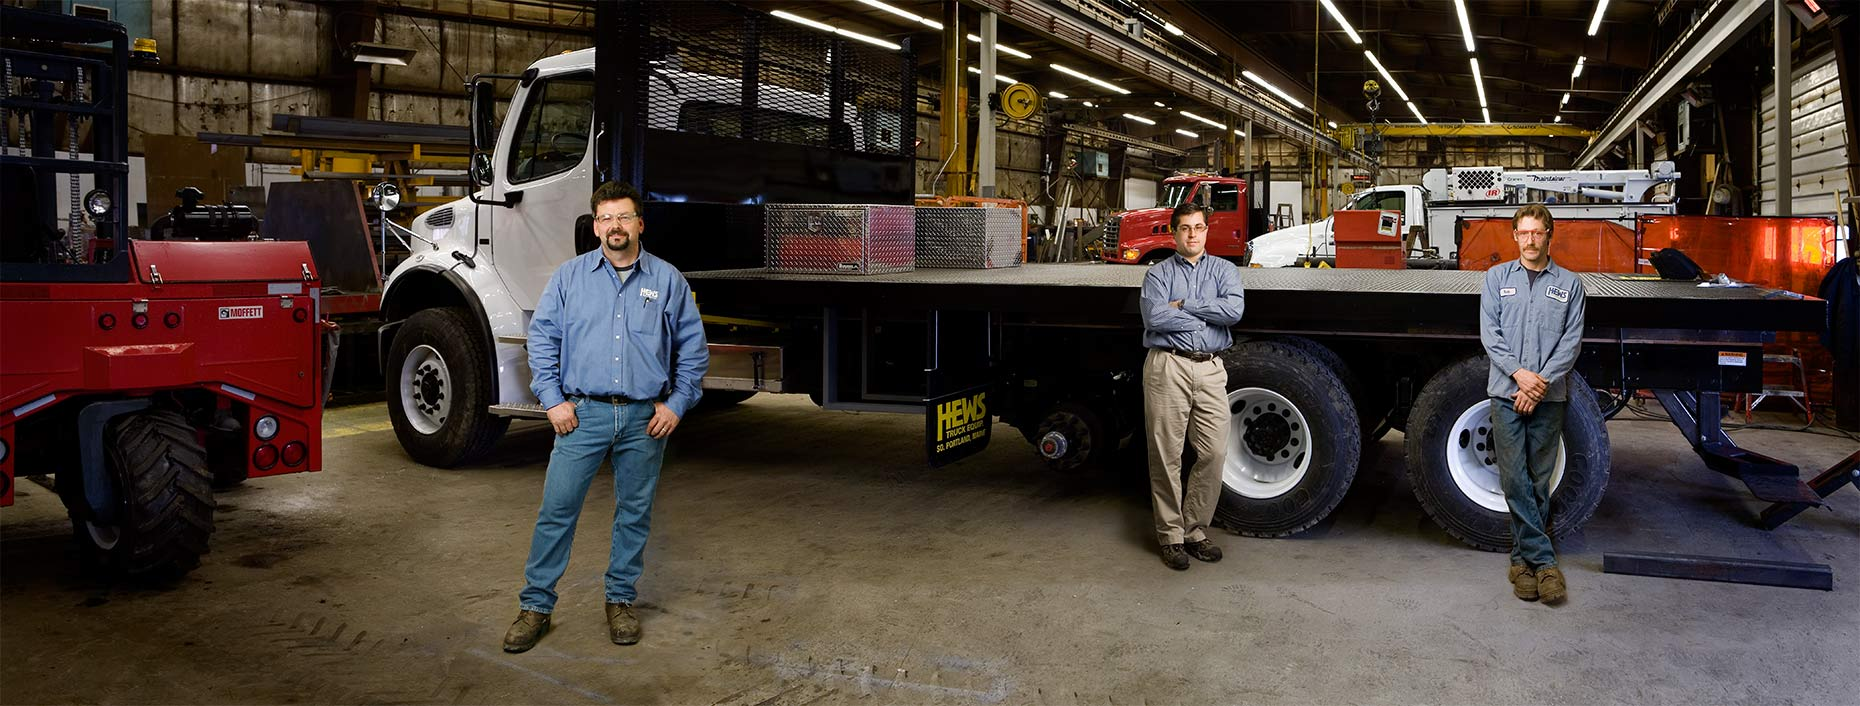 Group panoramic photo of workers at Truck customization firm by commercial photographer Kevin Brusie